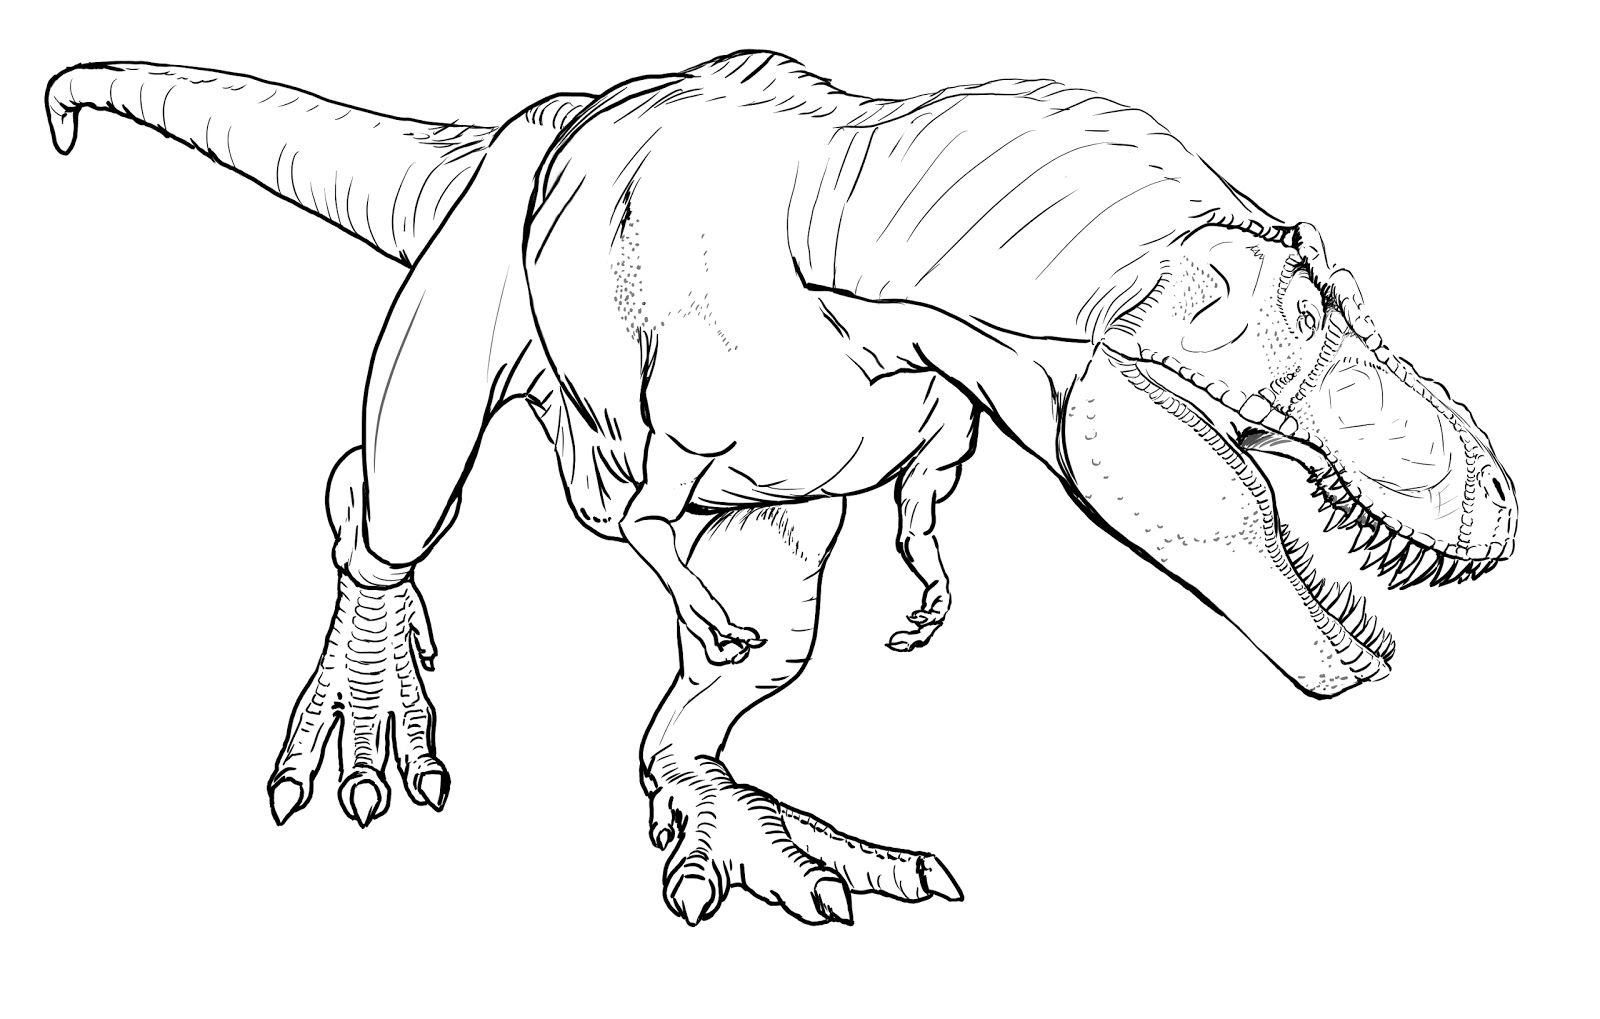 Dinosaur Coloring Pages Ideas Pdf Download Free Coloring Sheets Dinosaur Coloring Pages Dinosaur Coloring Coloring Pages